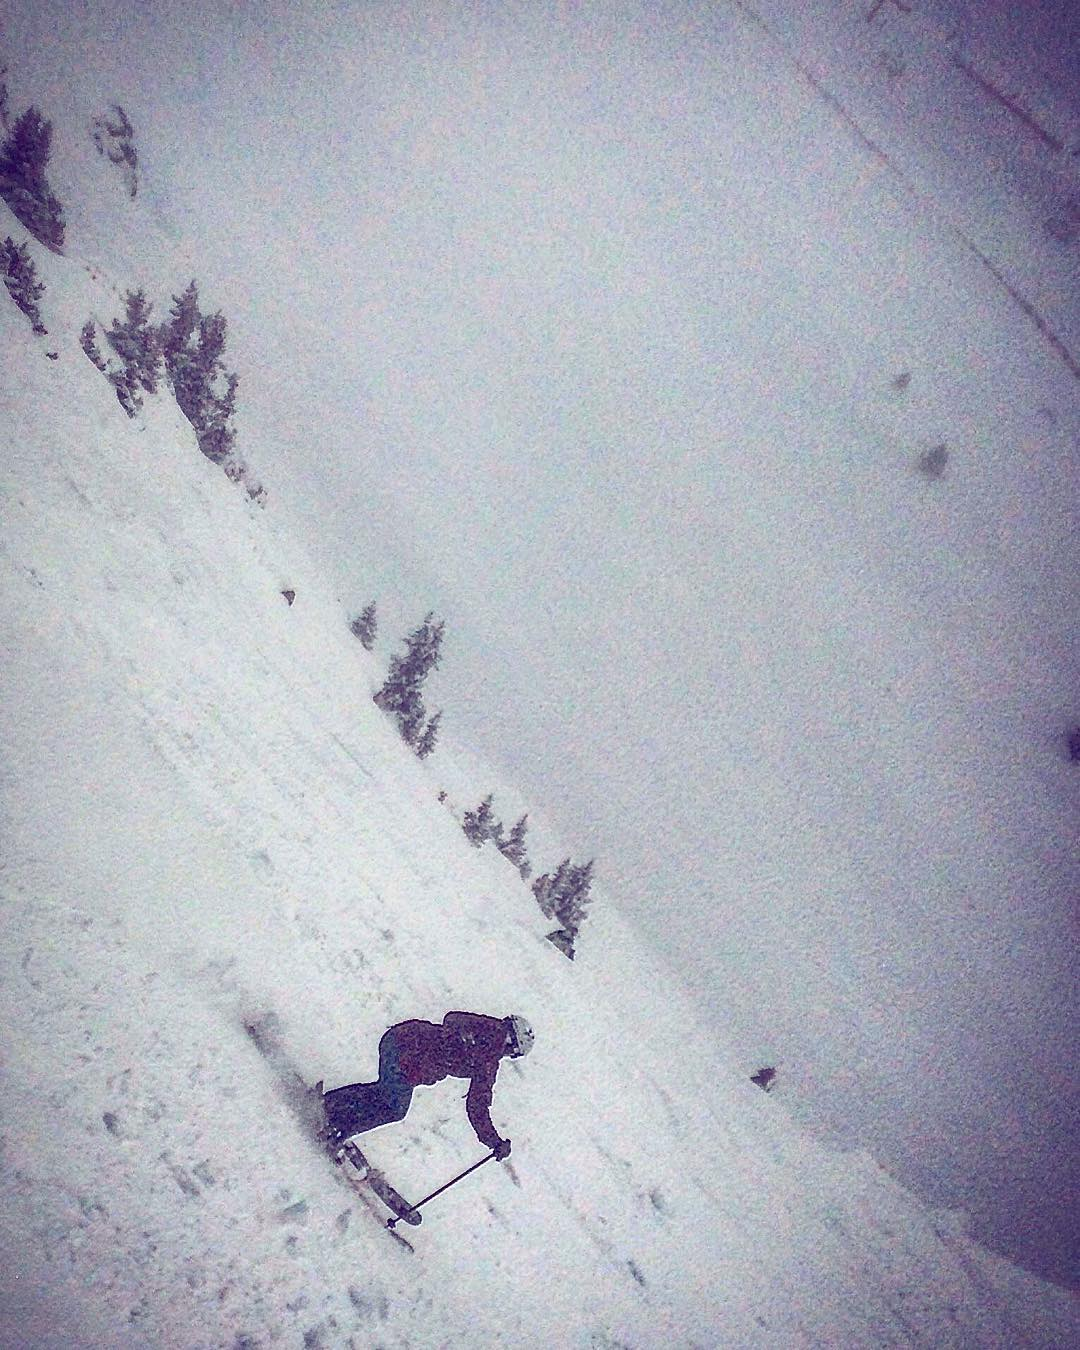 Maggie Murray dips into the abyss while test driving our Abyss ski during the #extremefaceshots tour.